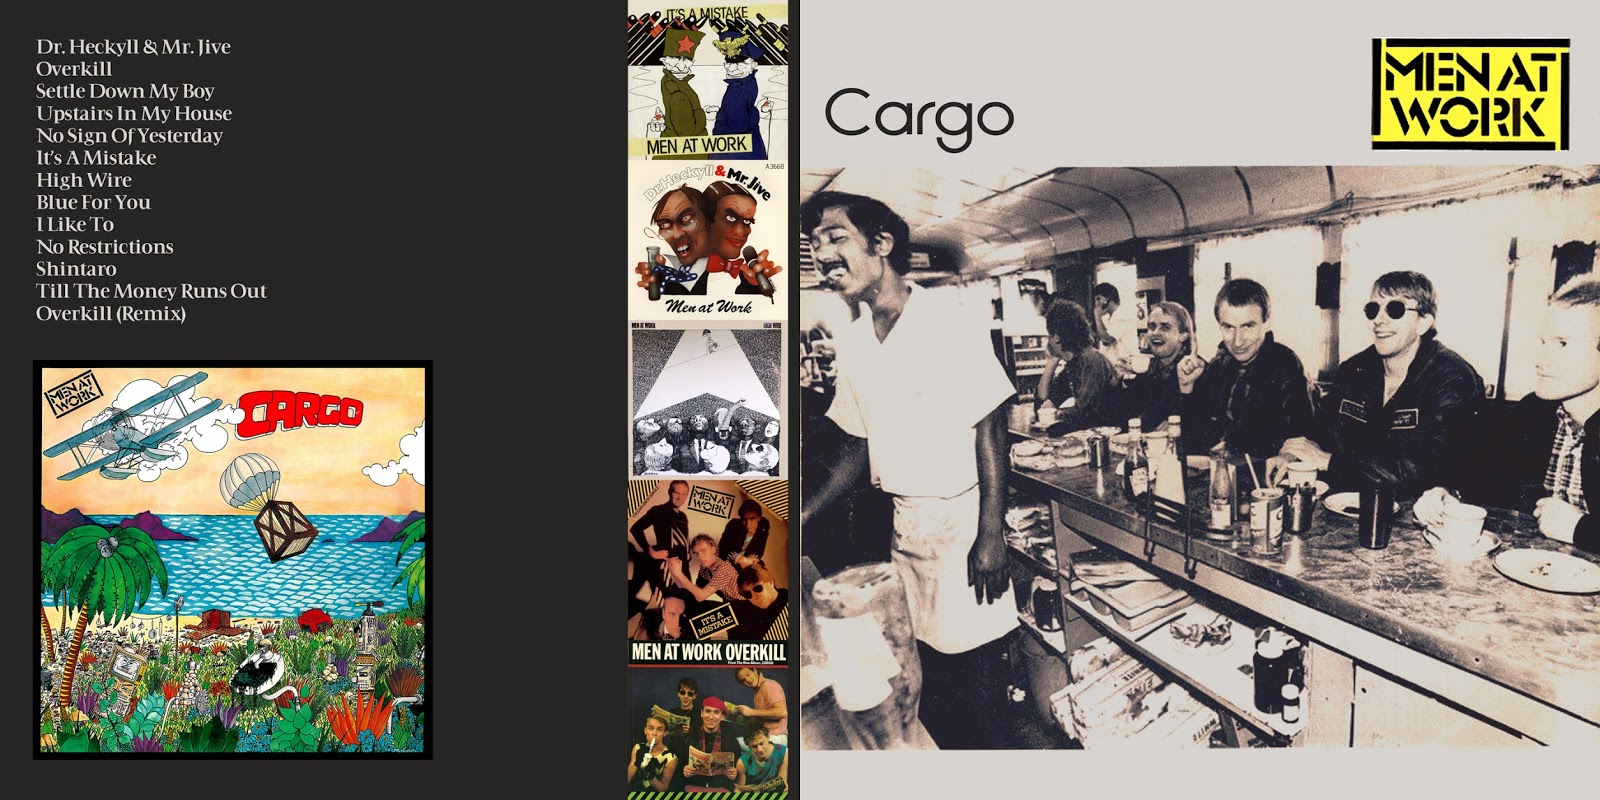 All the Air In My Lungs: Men At Work - Cargo - 1982